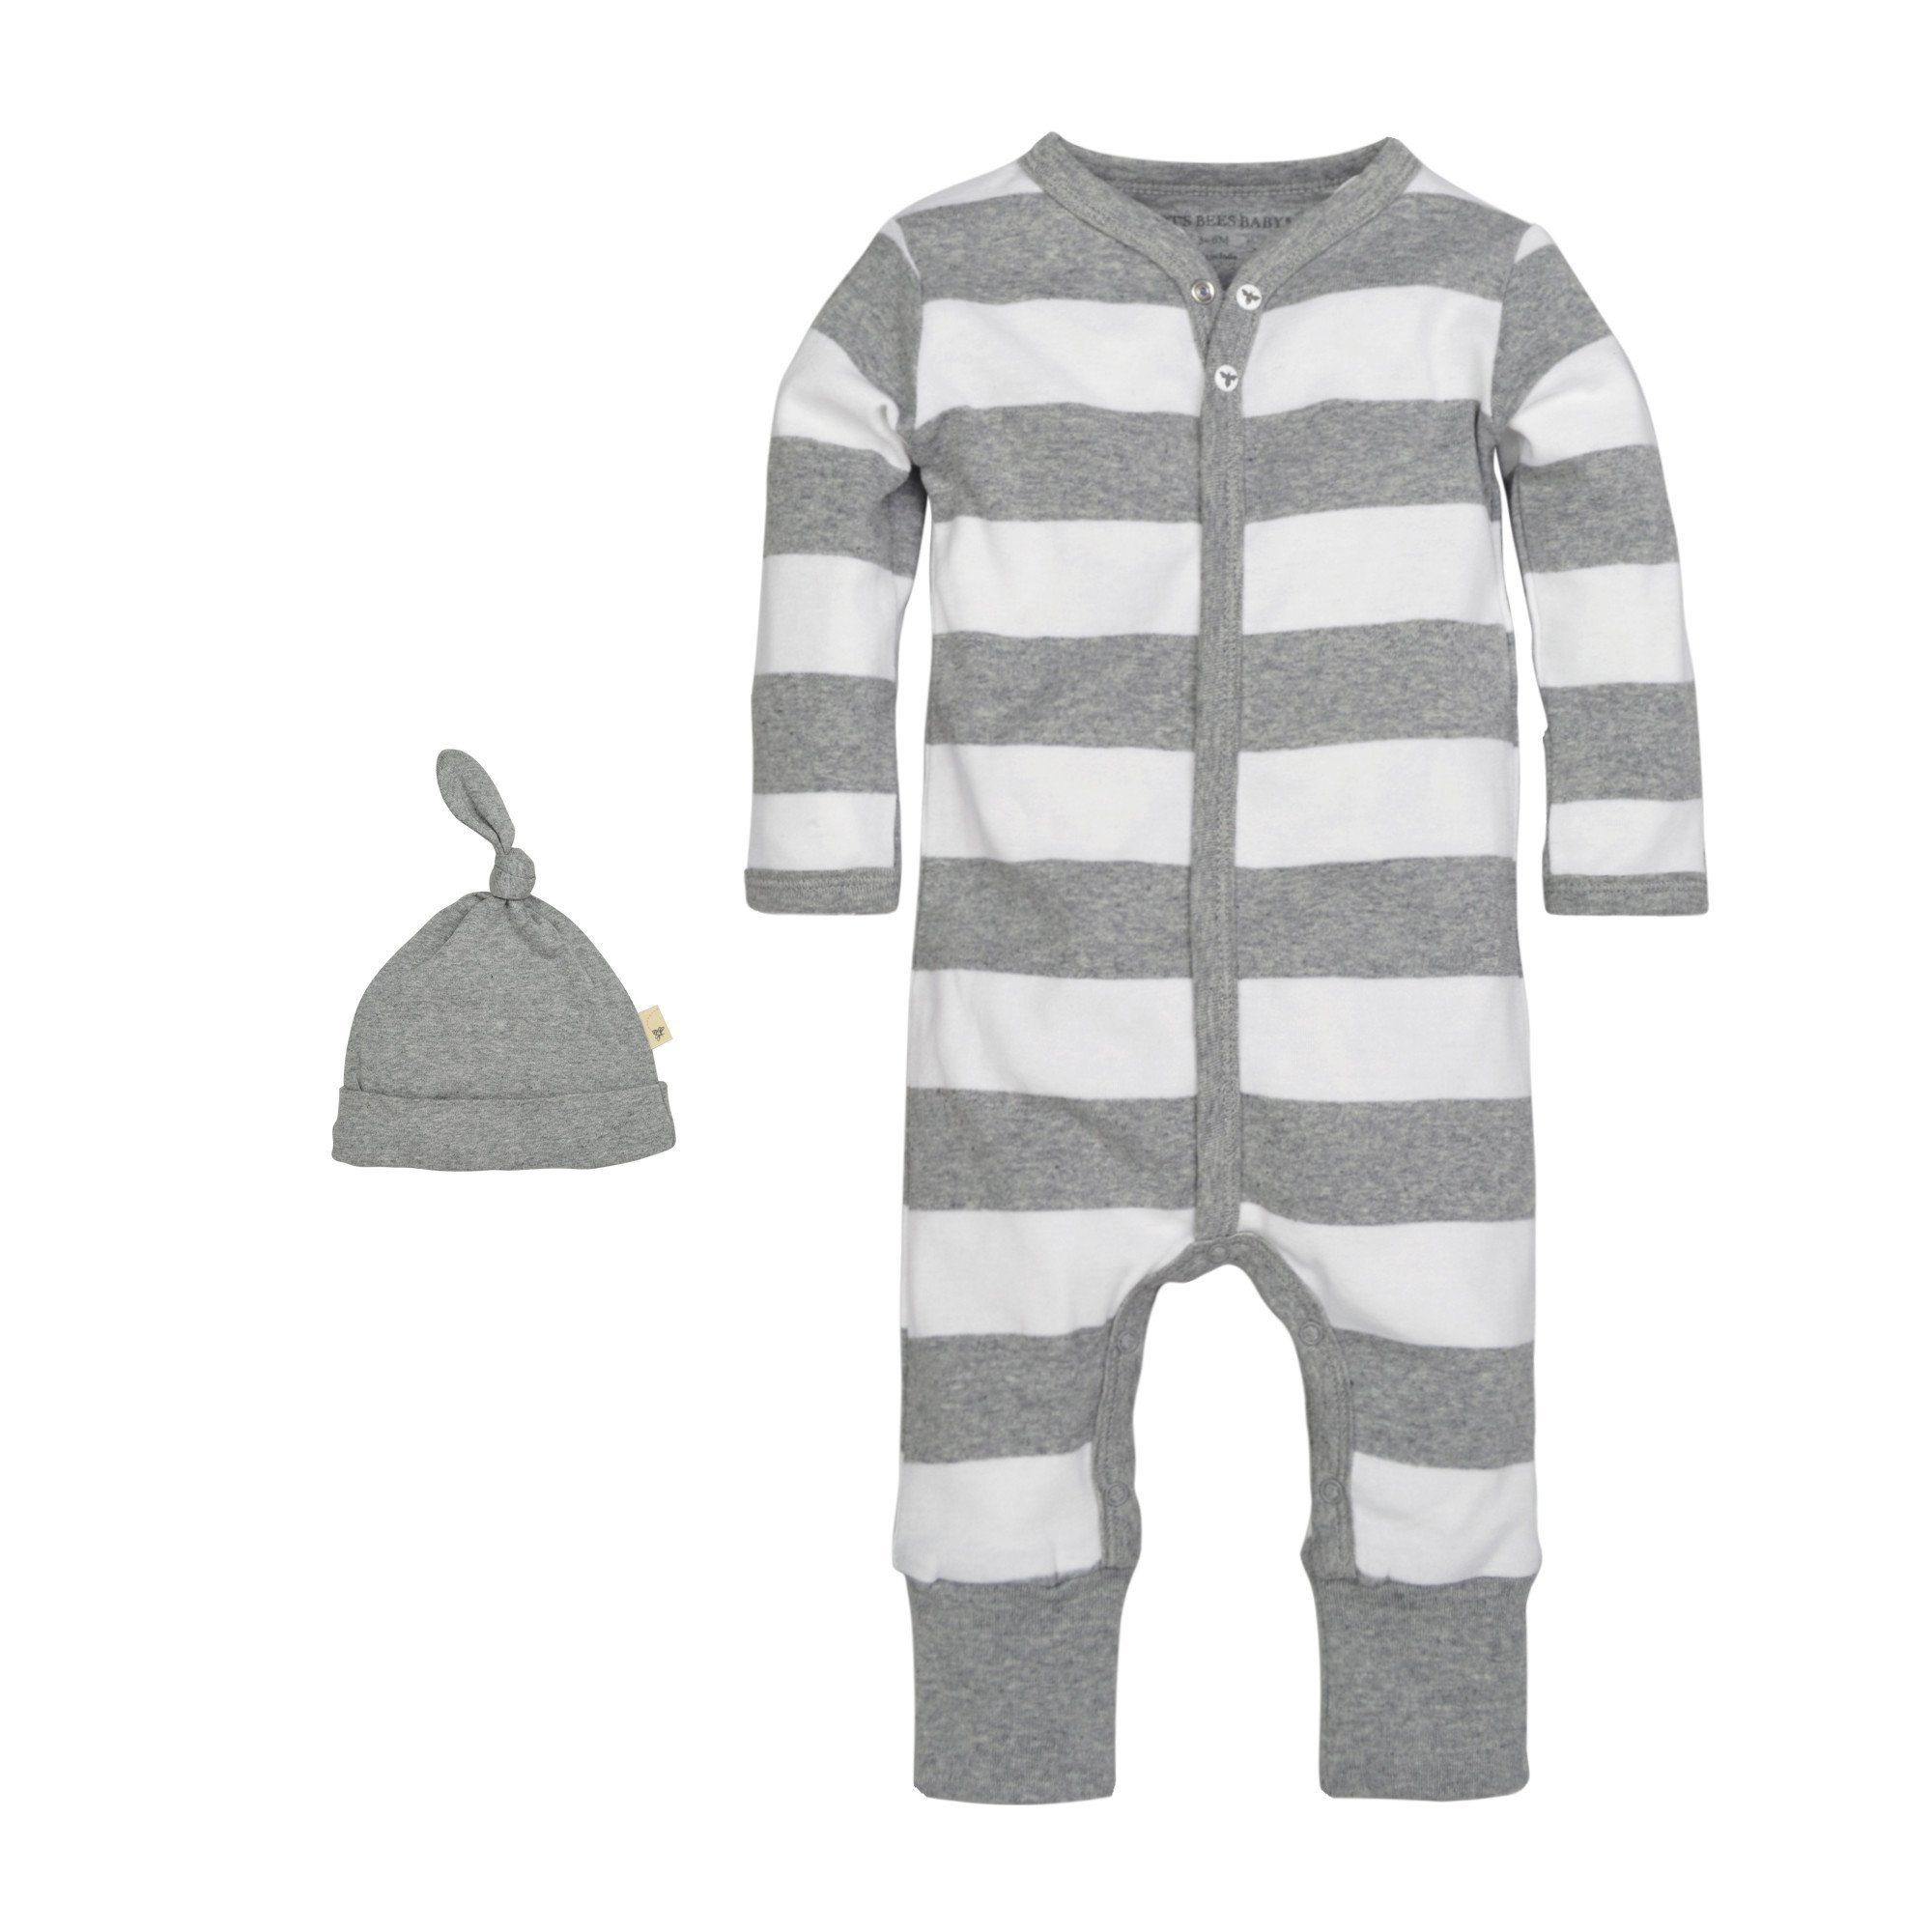 3 Colors Burt/'s Bees Baby Girls/' Long Sleeve Organic Footless Coverall